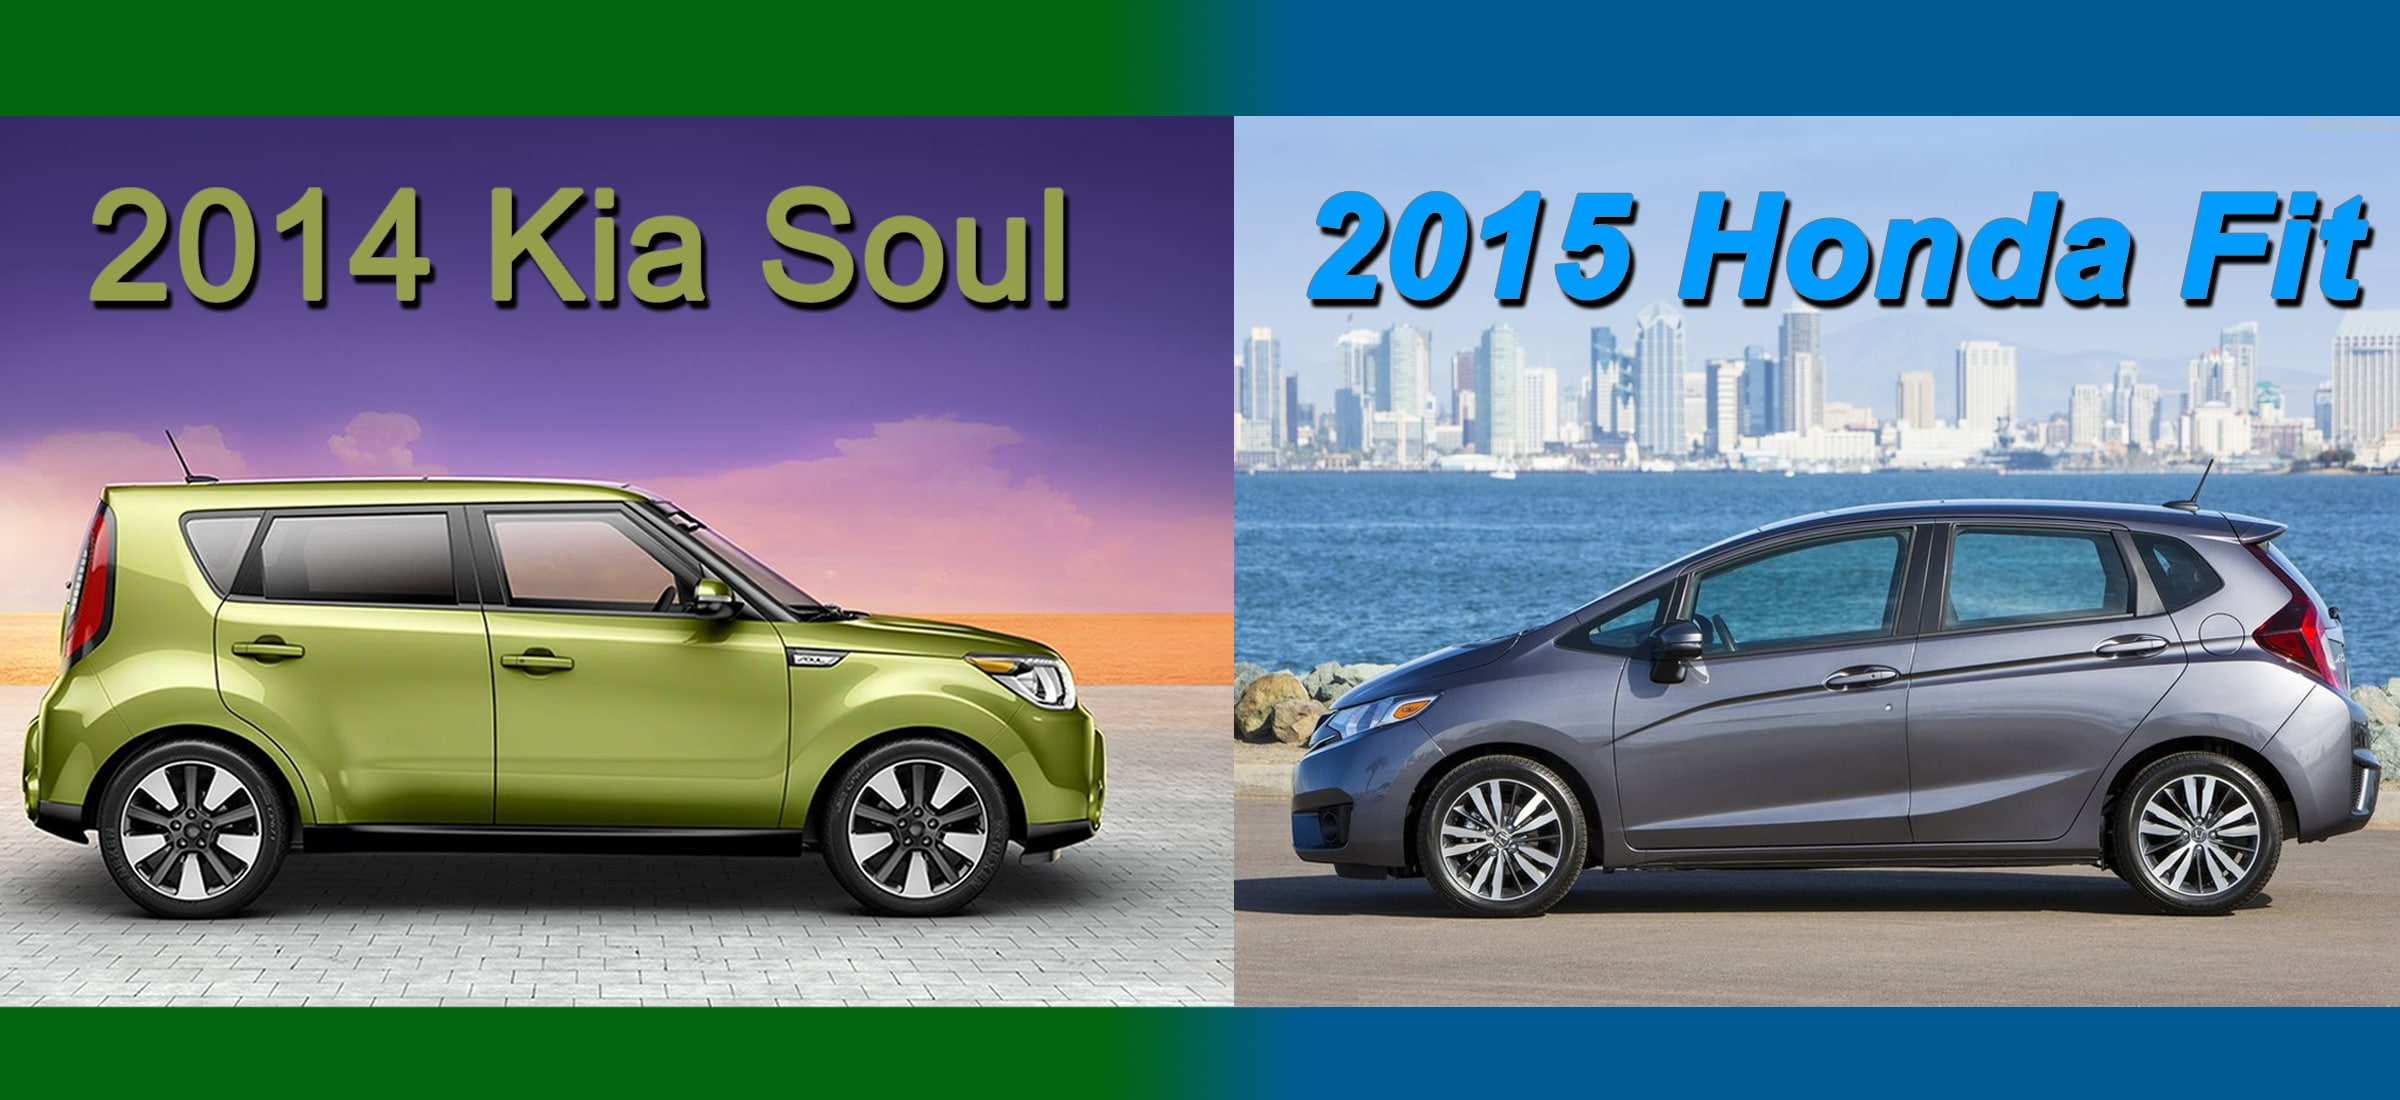 2014 Kia Soul 2015 Honda Fit Let Our Guide Help You